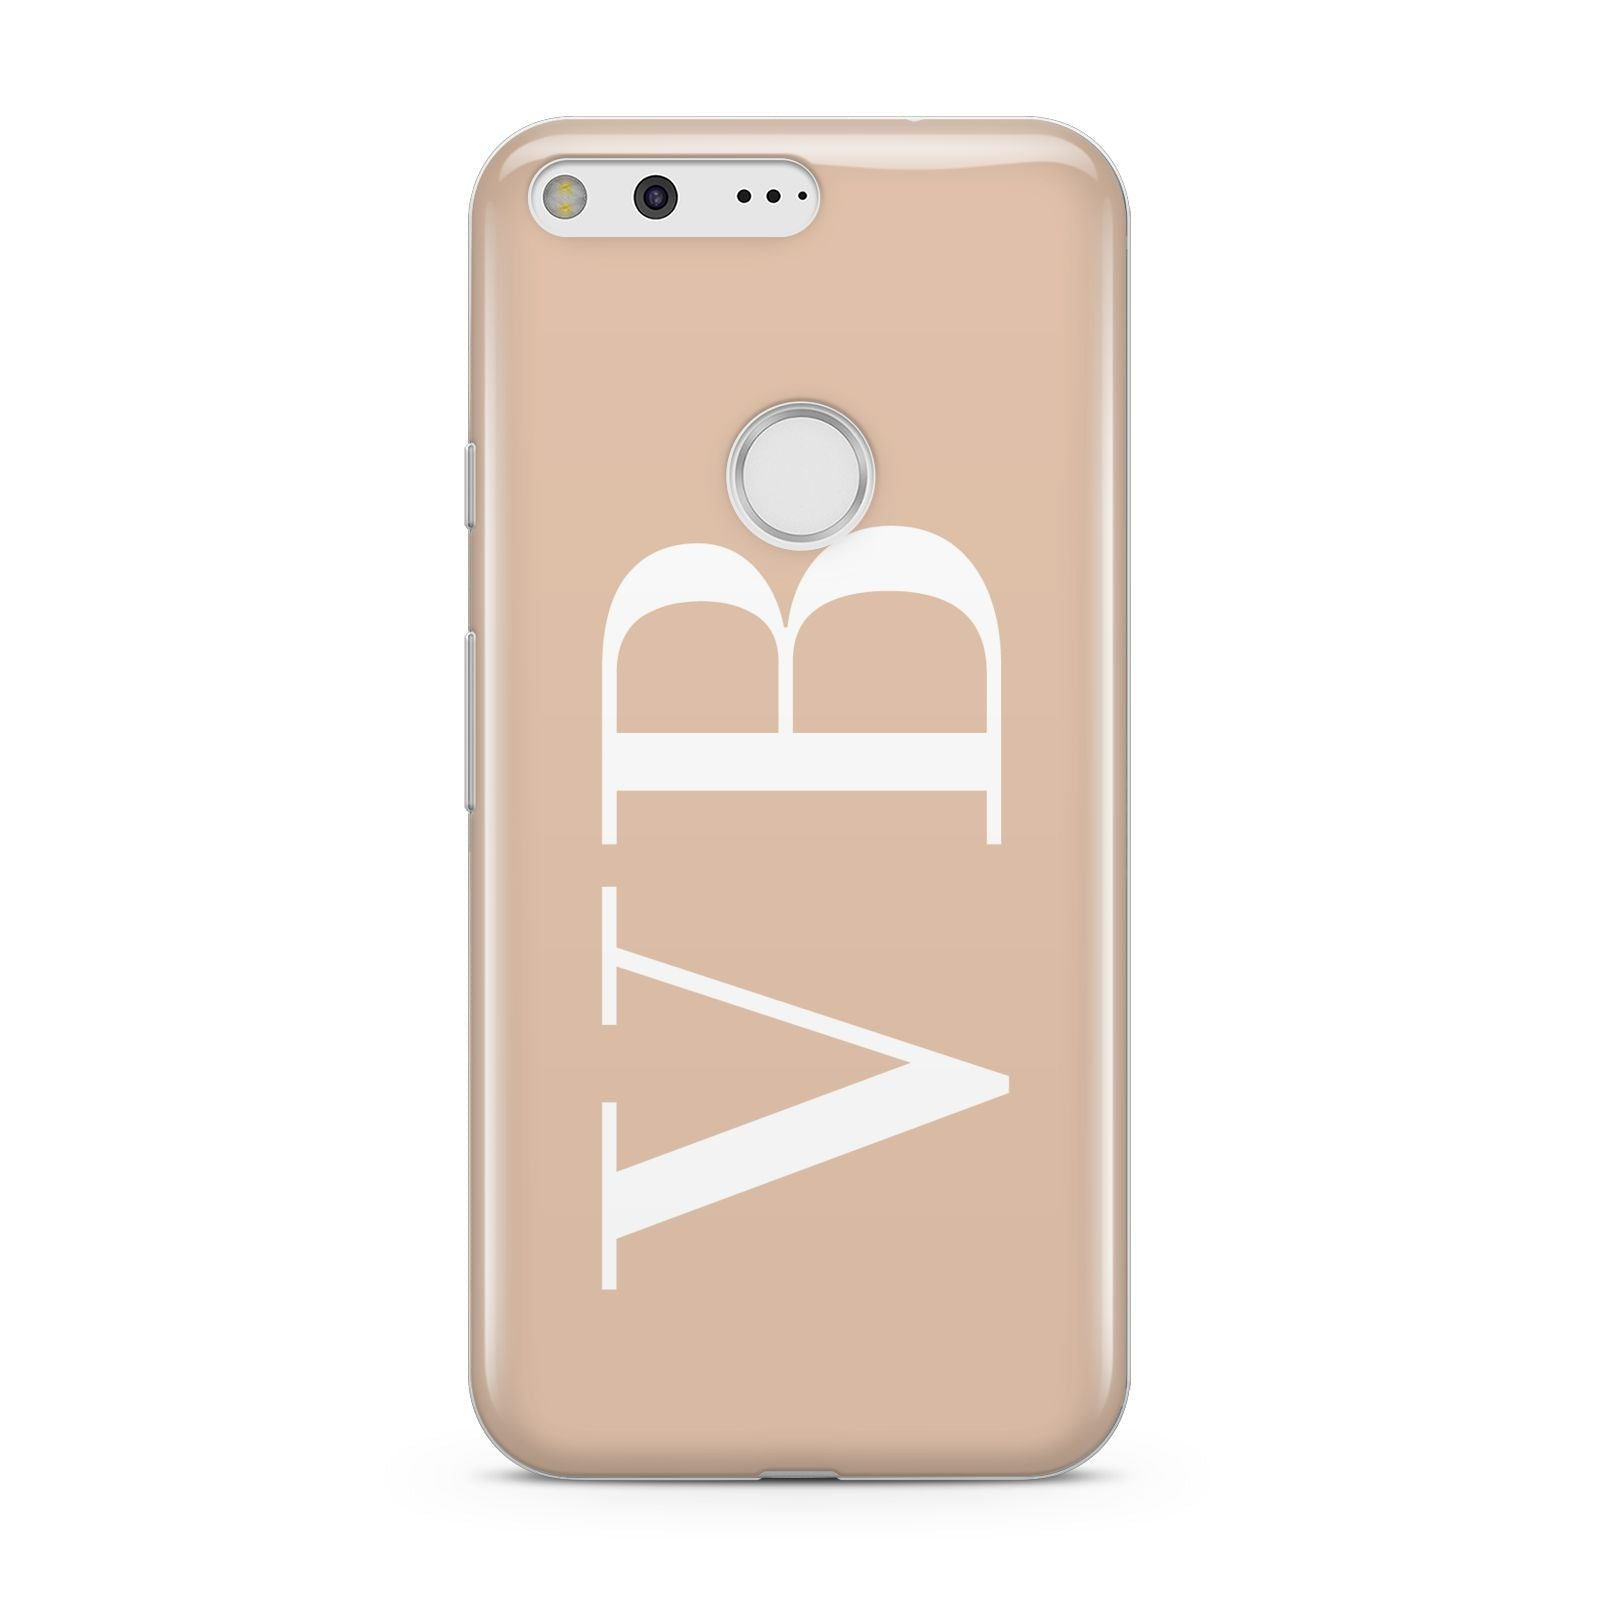 Nude And White Personalised Google Pixel Case